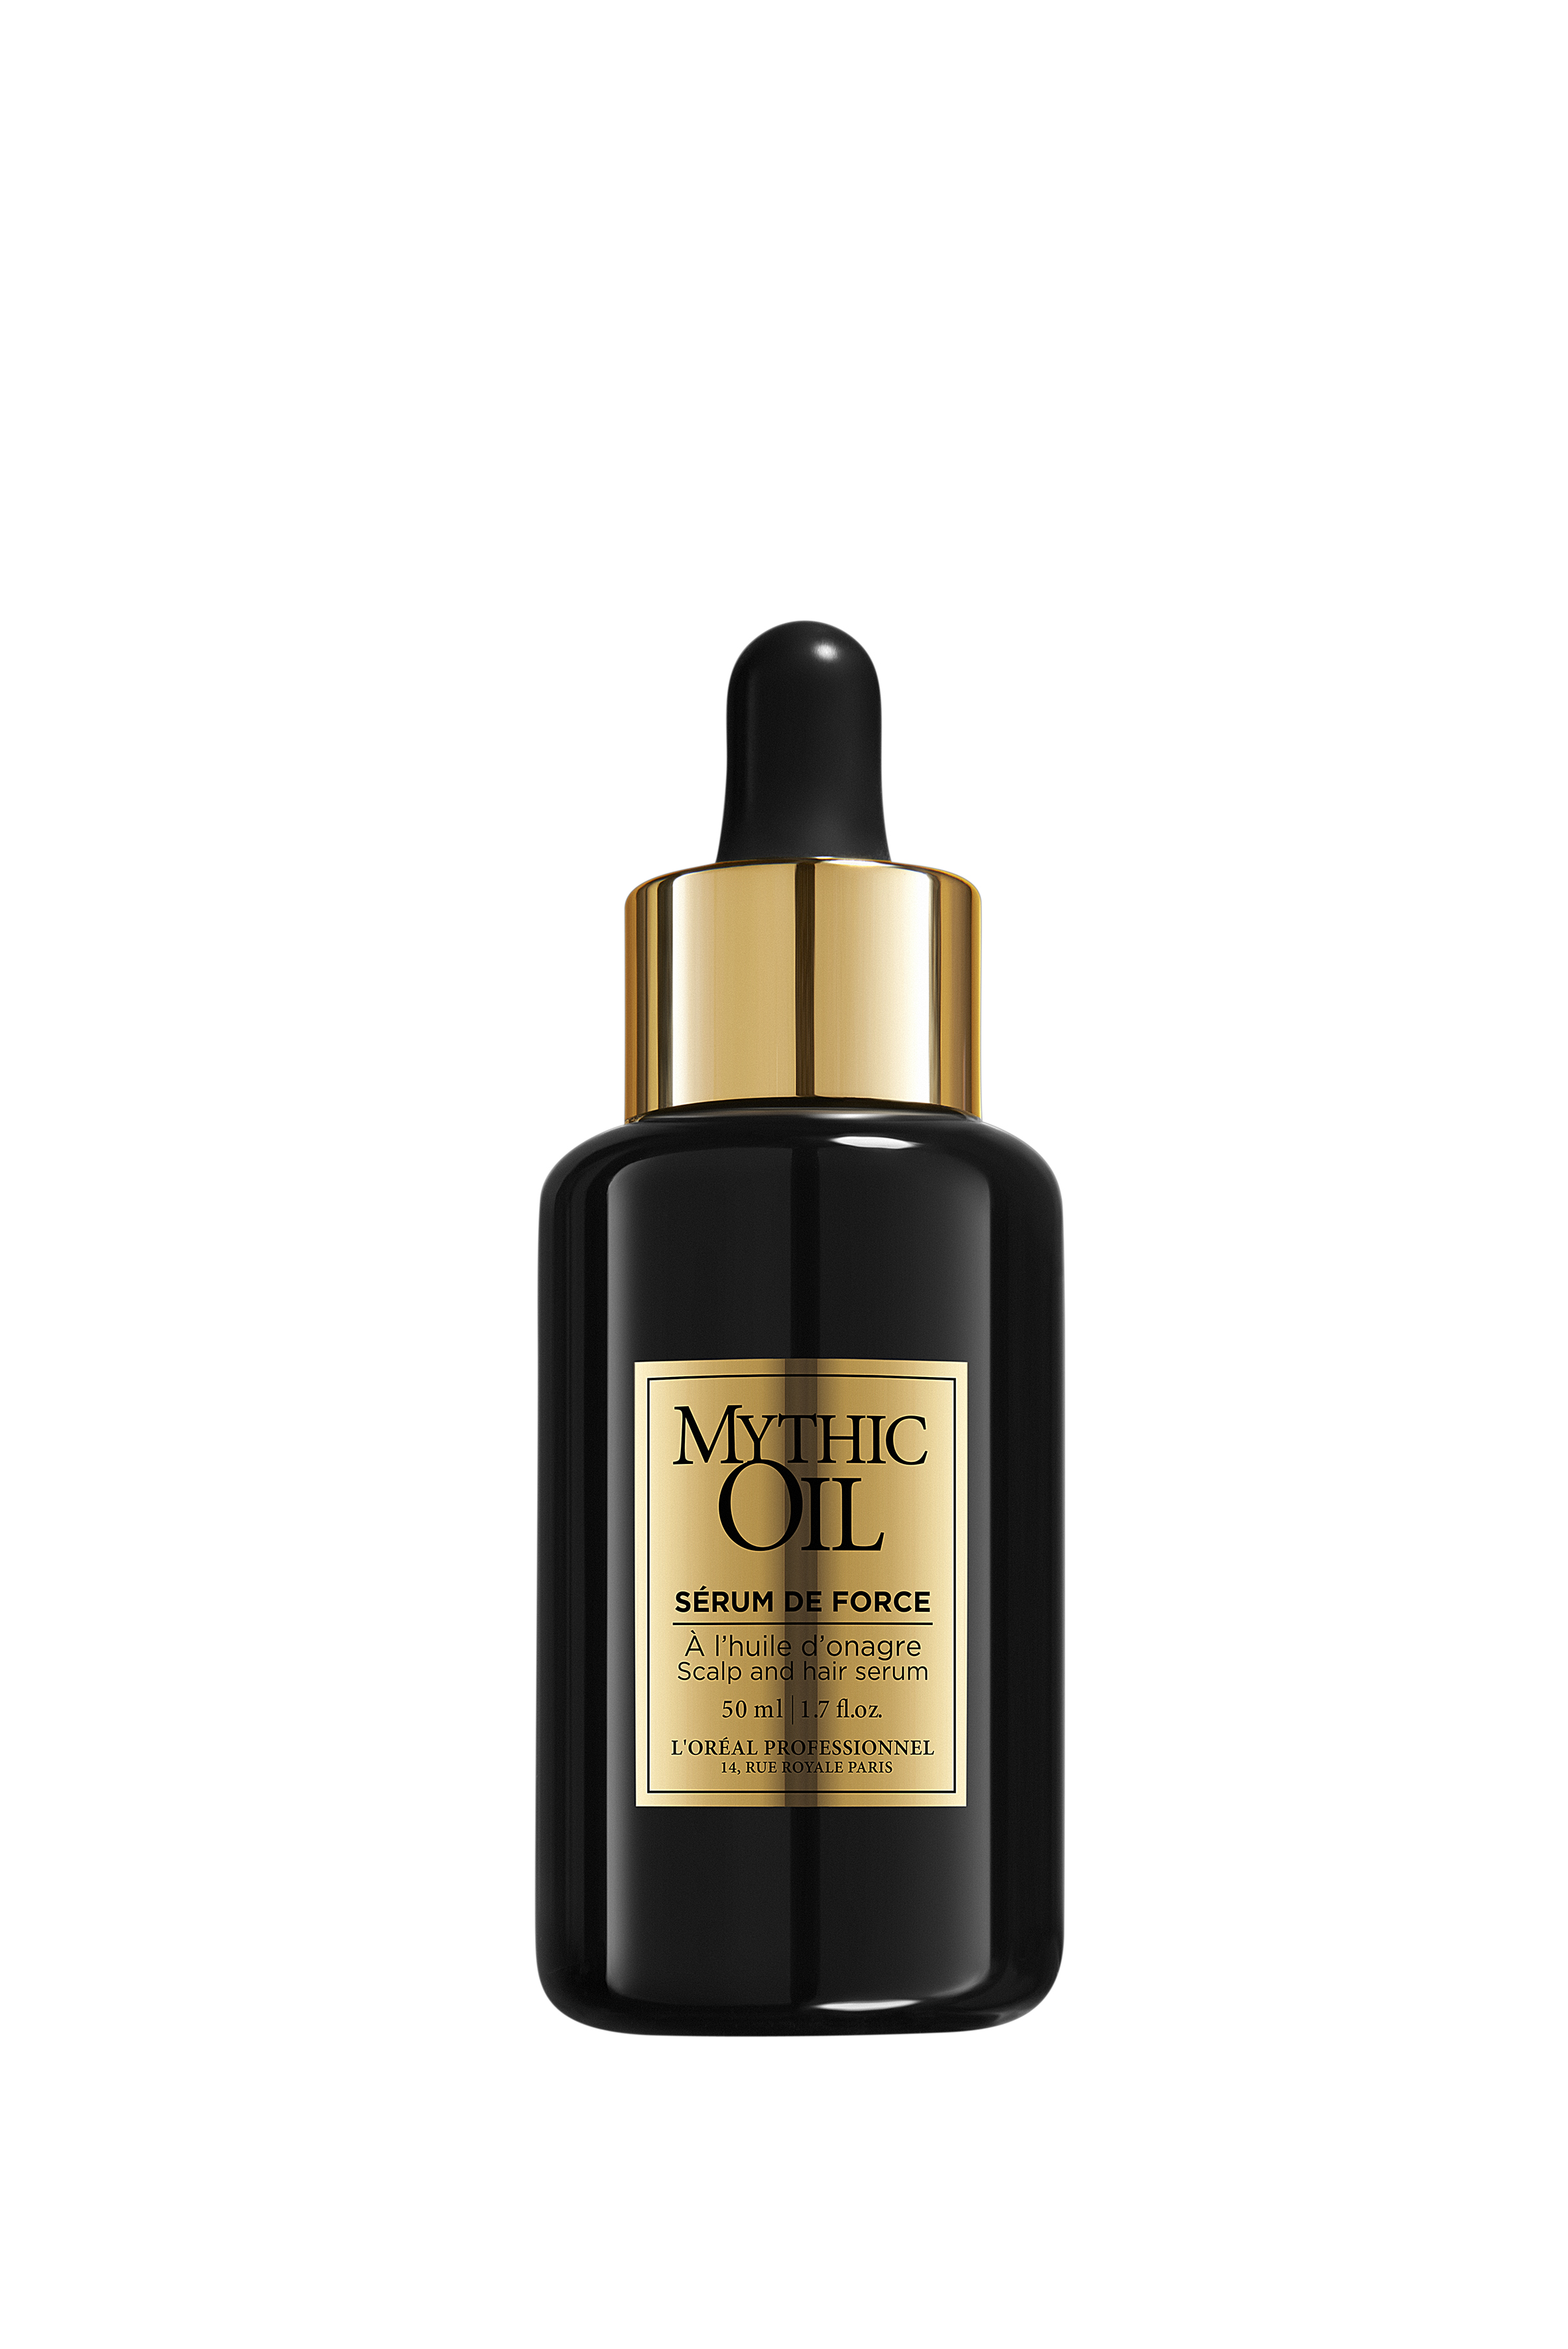 Mythic Oil Serum de Force